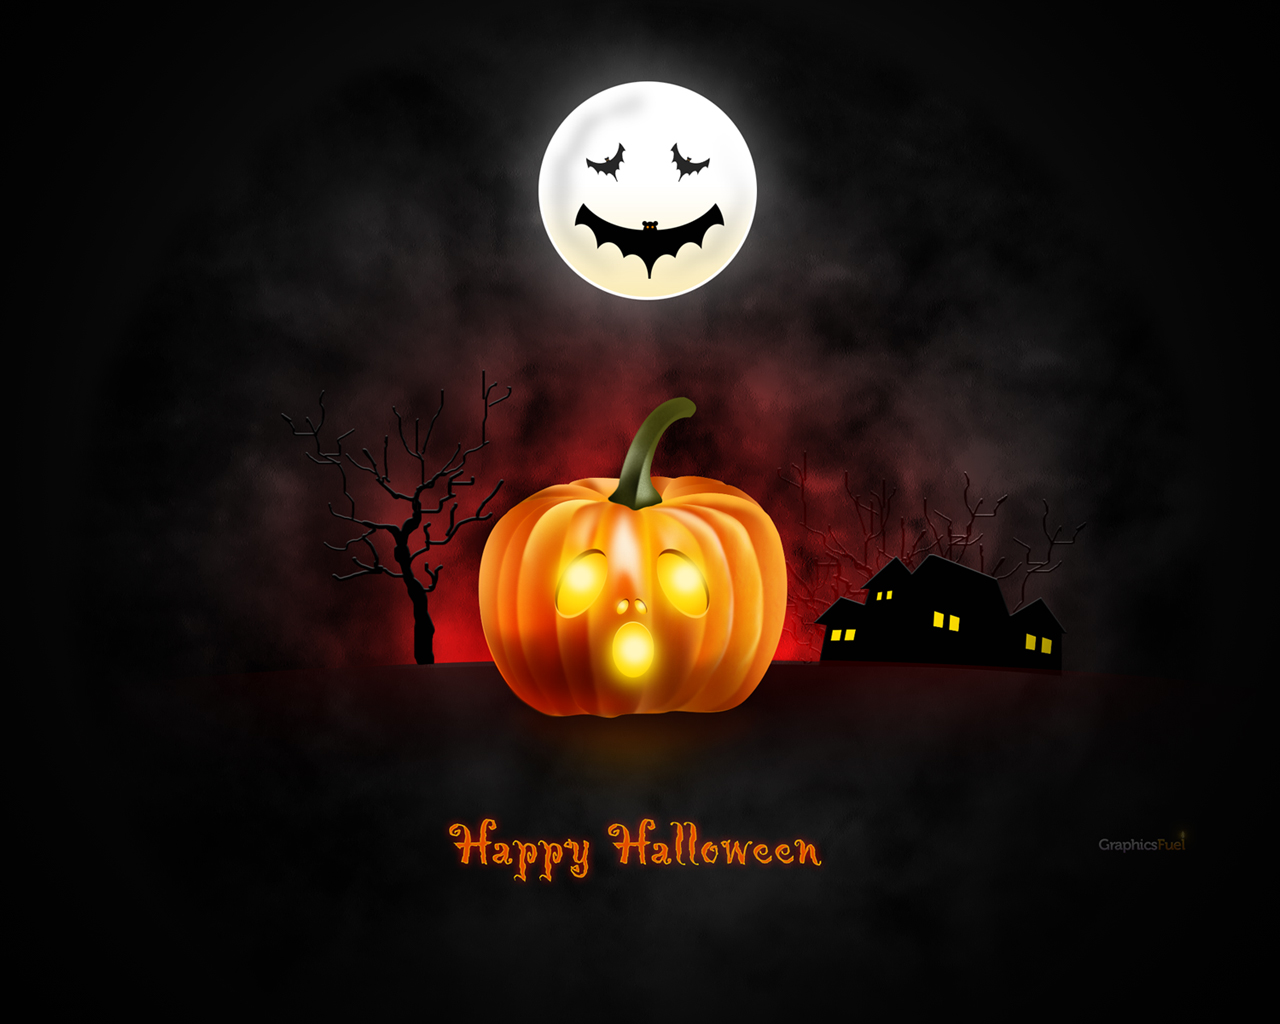 Halloween wallpaper for desktop iPad iPhone PSD icons included 1280x1024